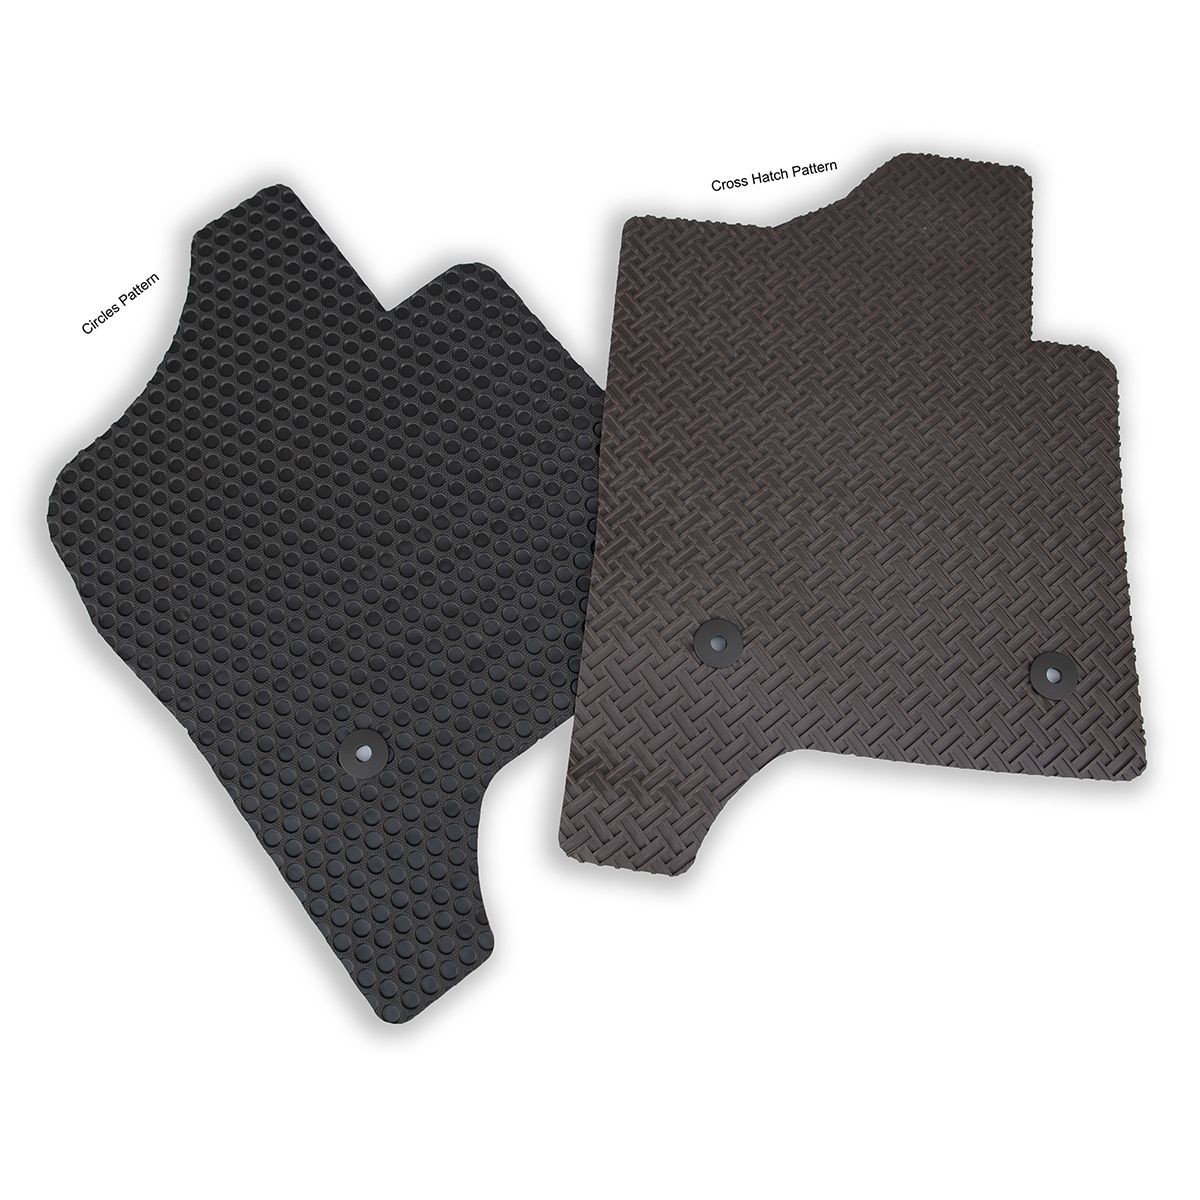 Acura NSX Custom All Weather Rubber Floor Mats